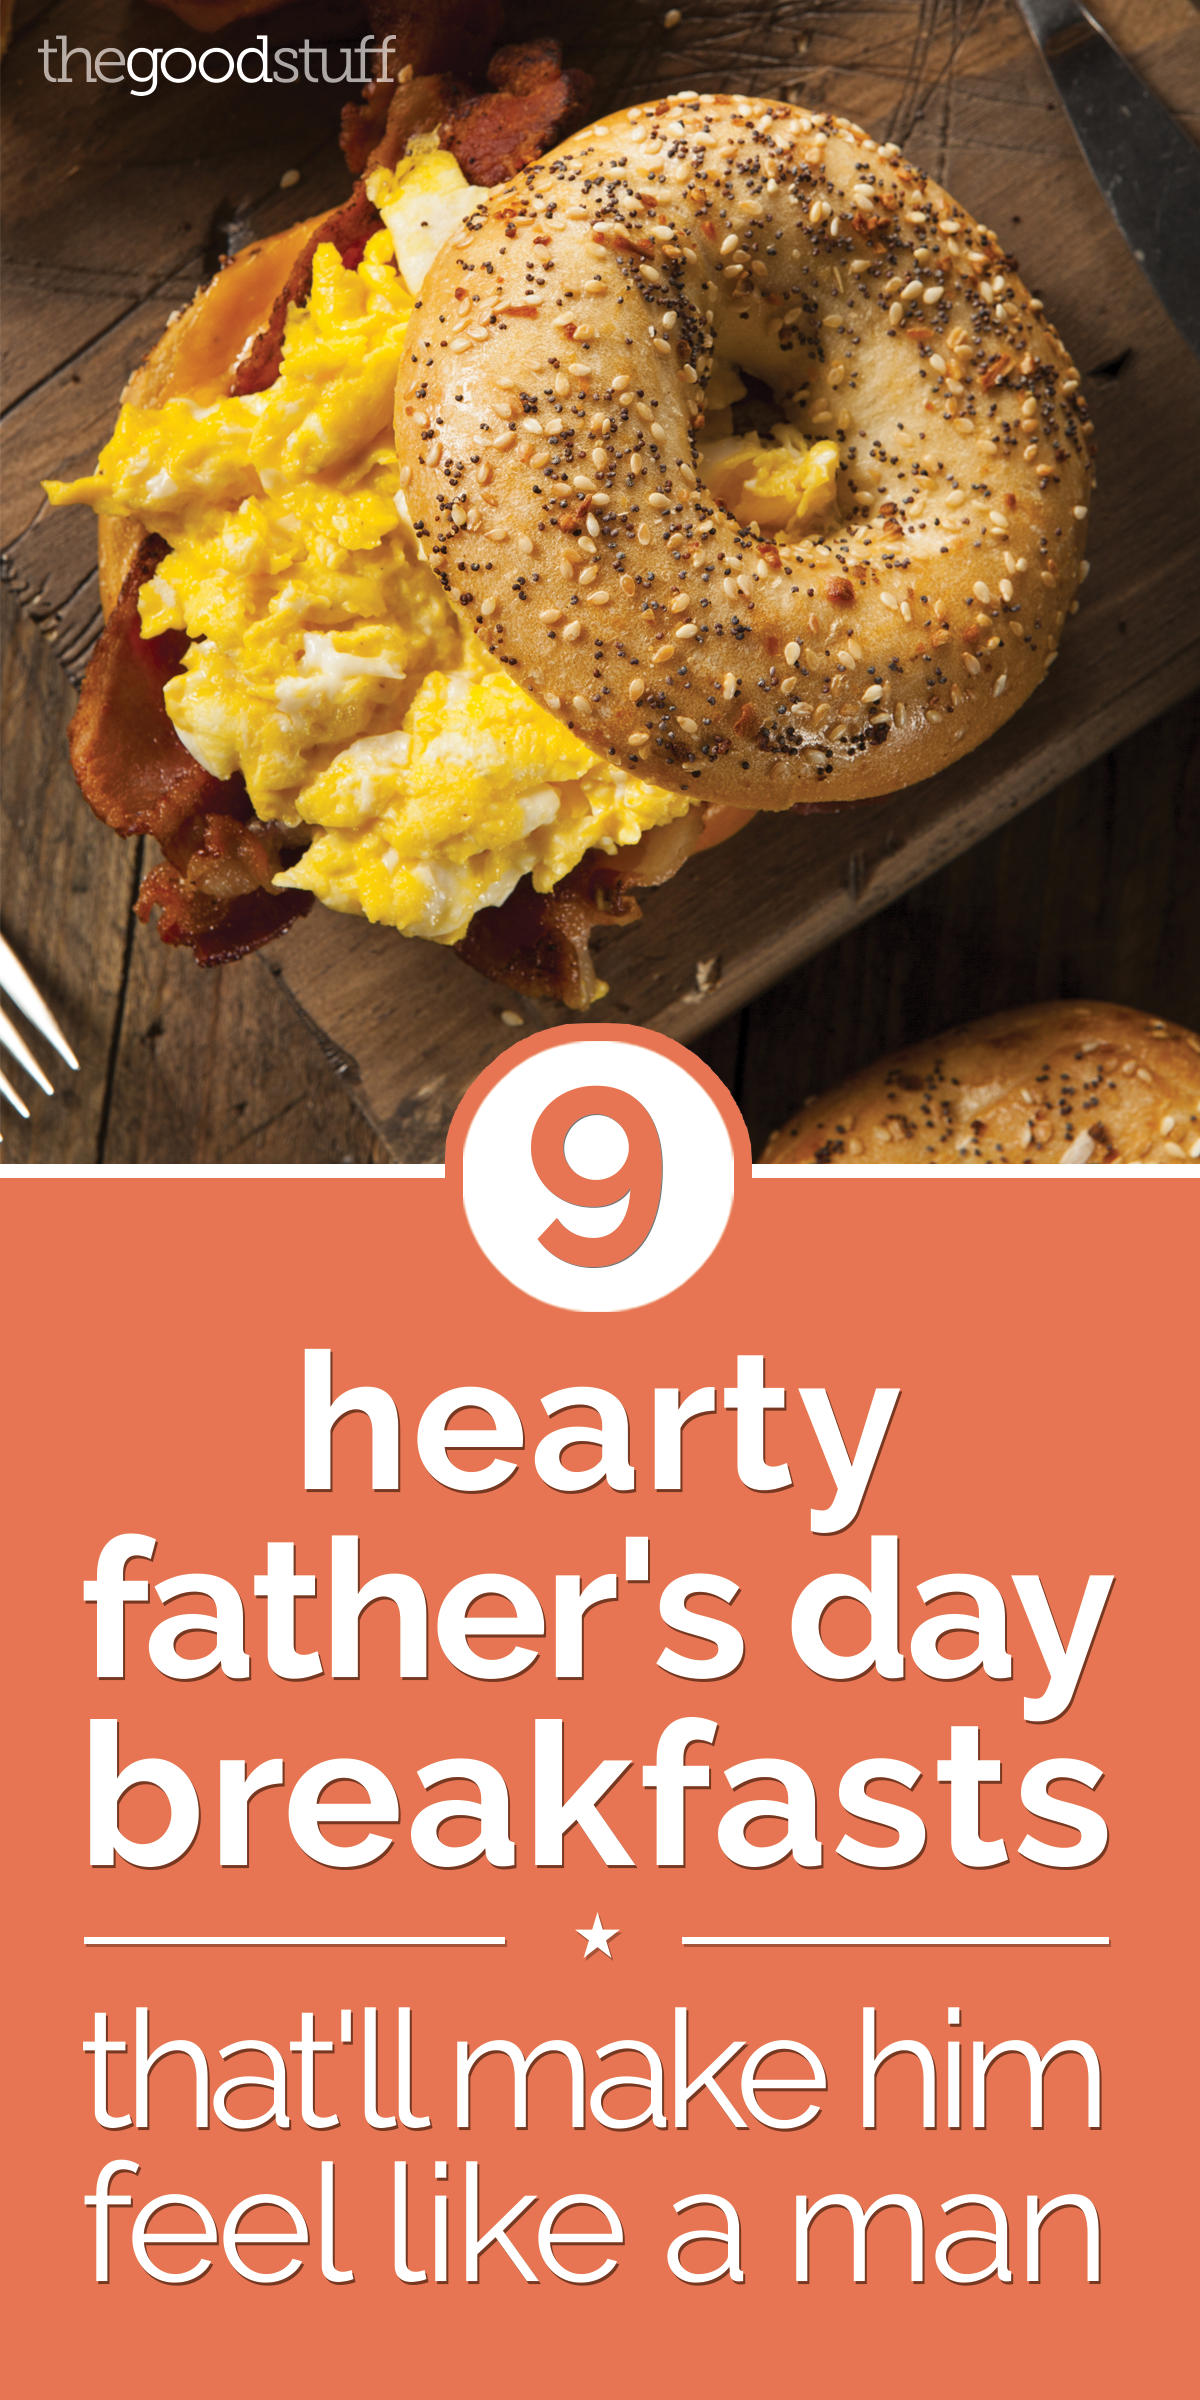 9 Hearty Father's Day Breakfasts That'll Make Him Feel Like a Man | thegoodstuff